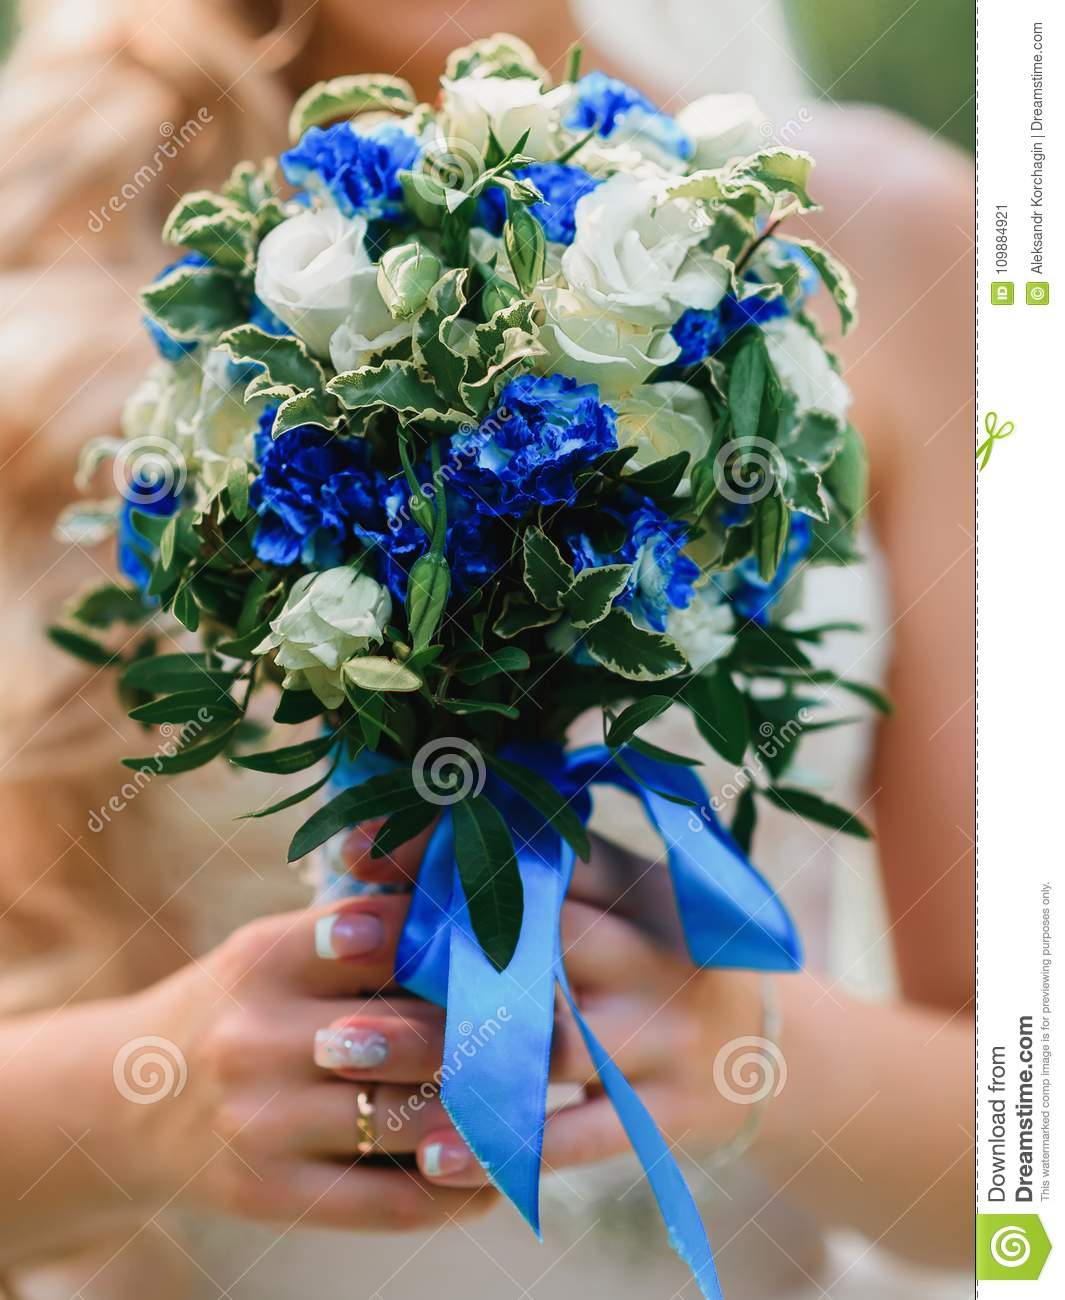 Wedding bouquet with white roses and blue flowers in the hands of wedding bouquet with white roses and blue flowers in the hands of the bride with a izmirmasajfo